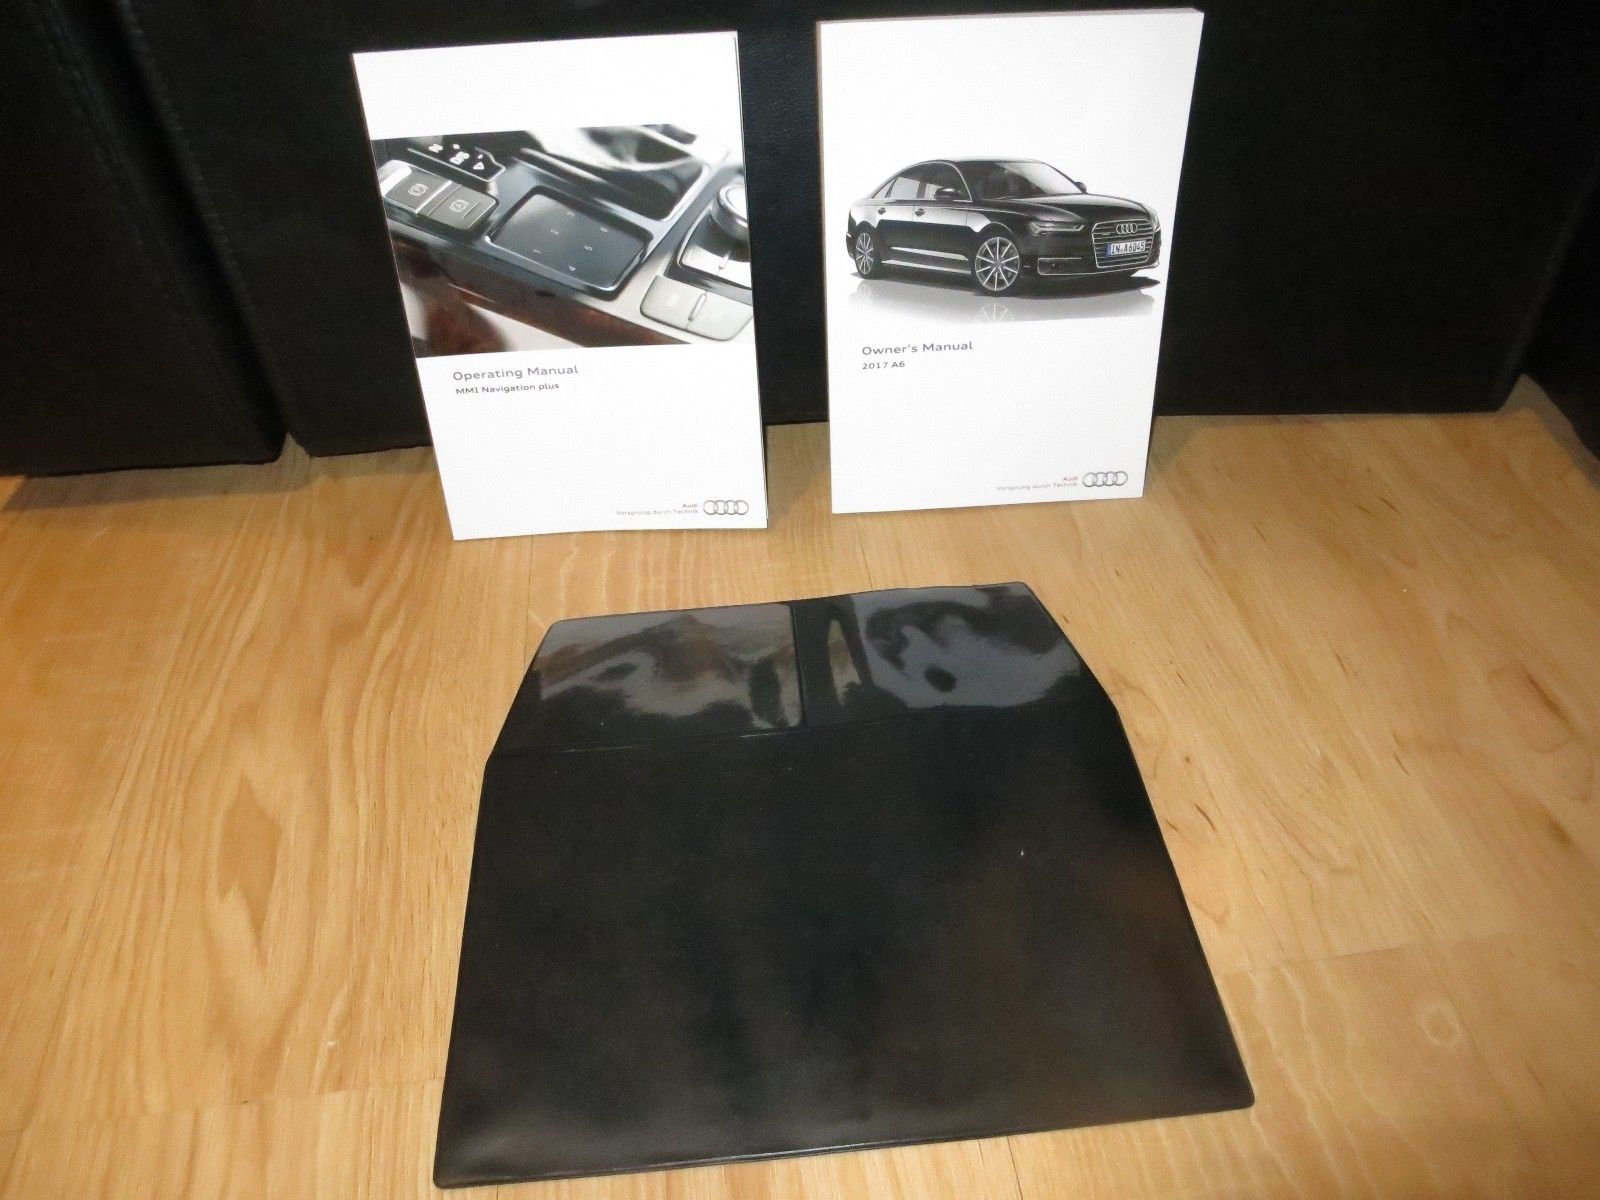 01 audi a6 owners manual